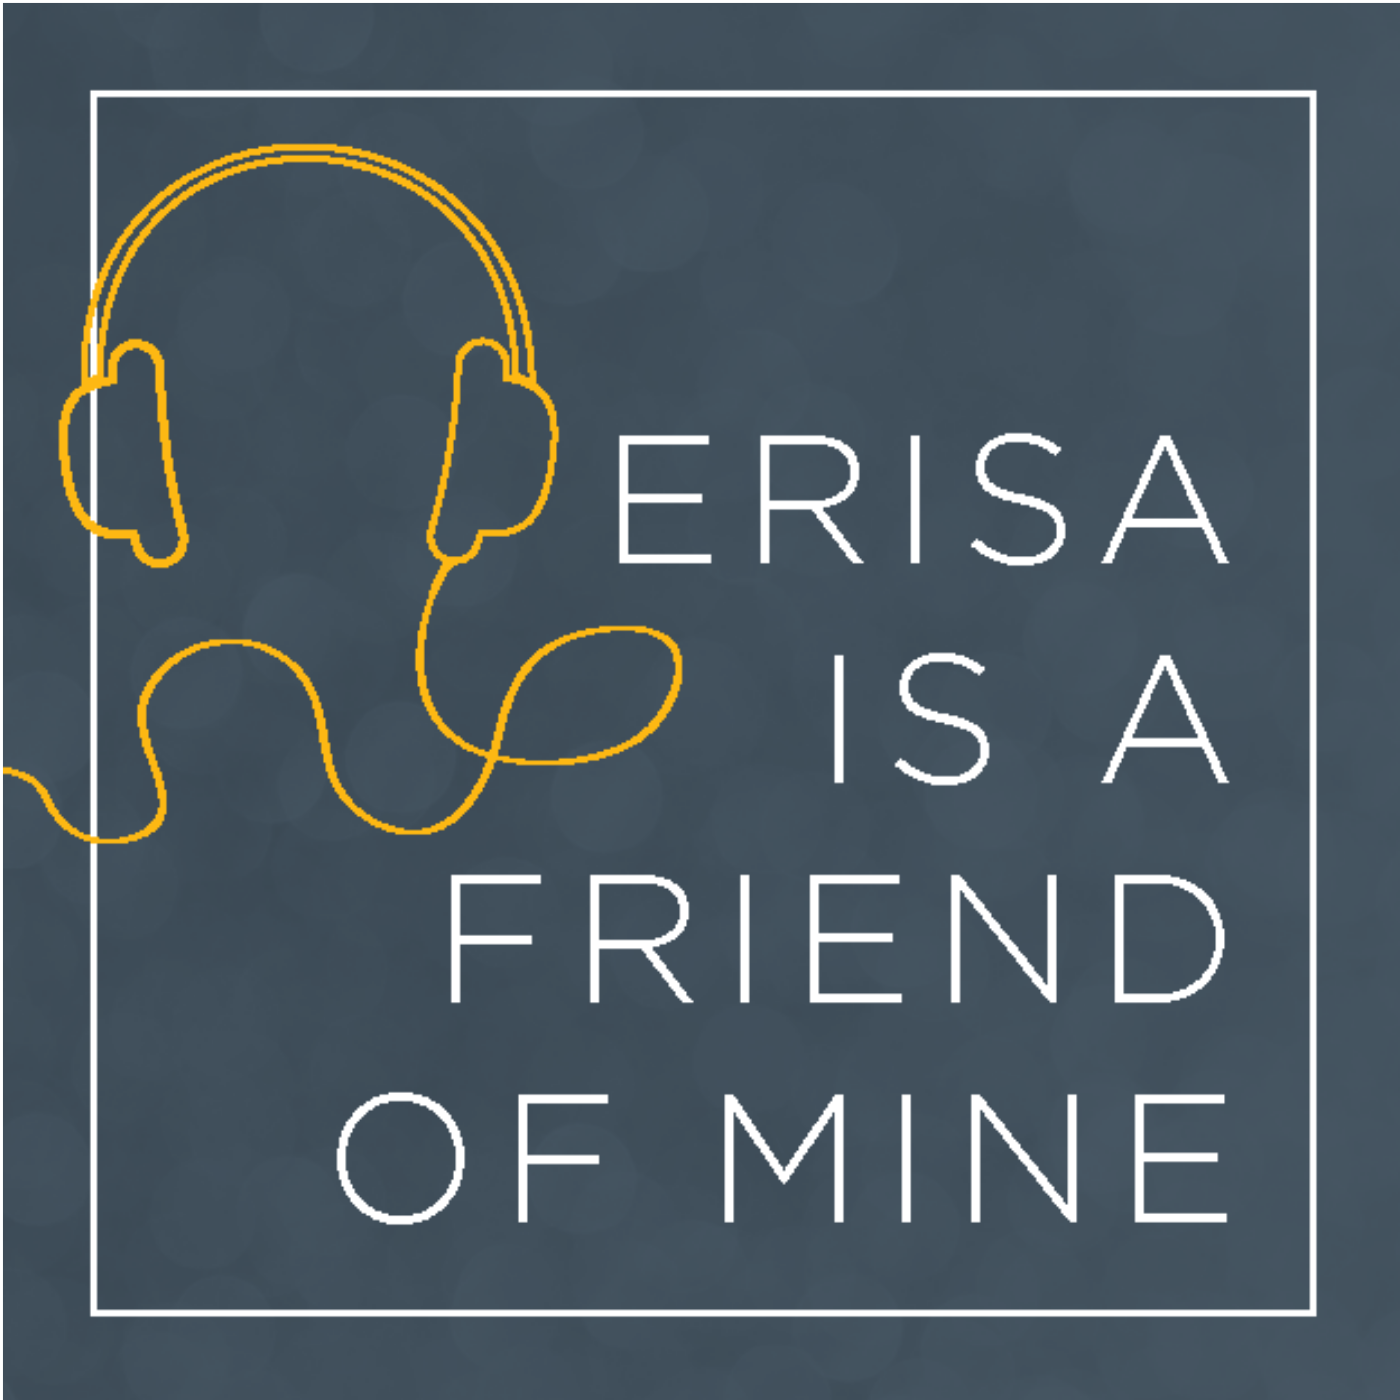 ERISA is a friend of mine